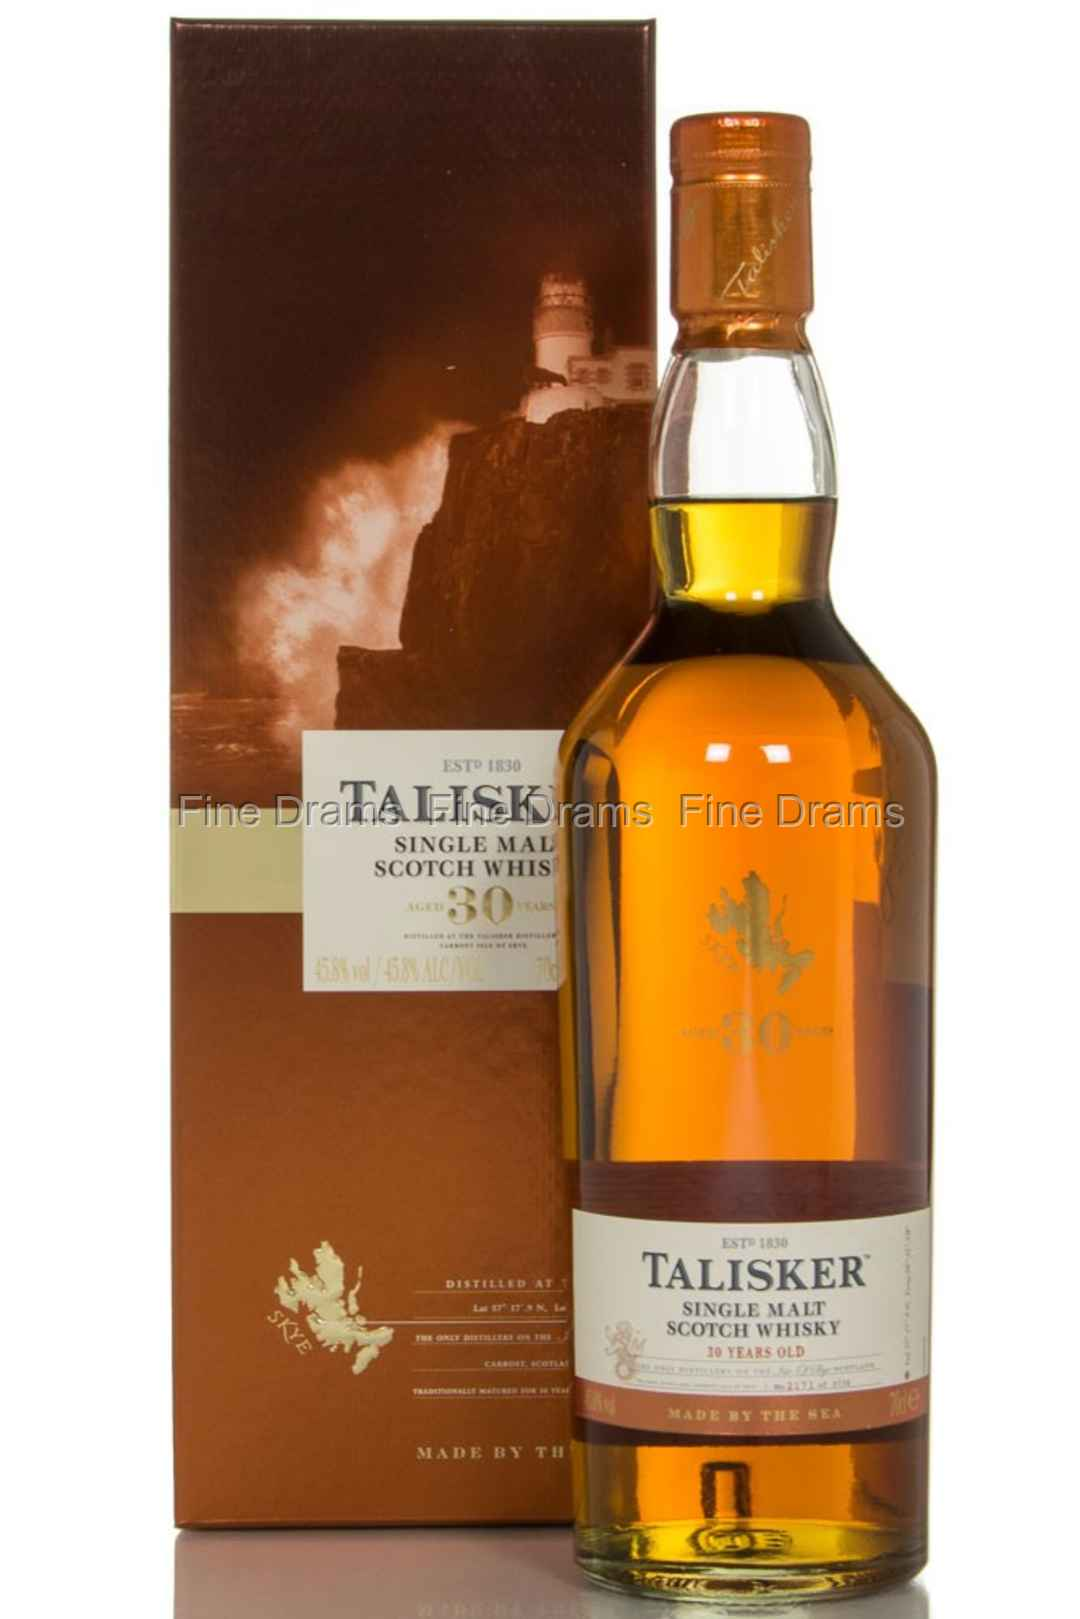 30 Yr Fixed Mortgage Rates: Talisker 30 Year Old Single Malt Scotch Whisky